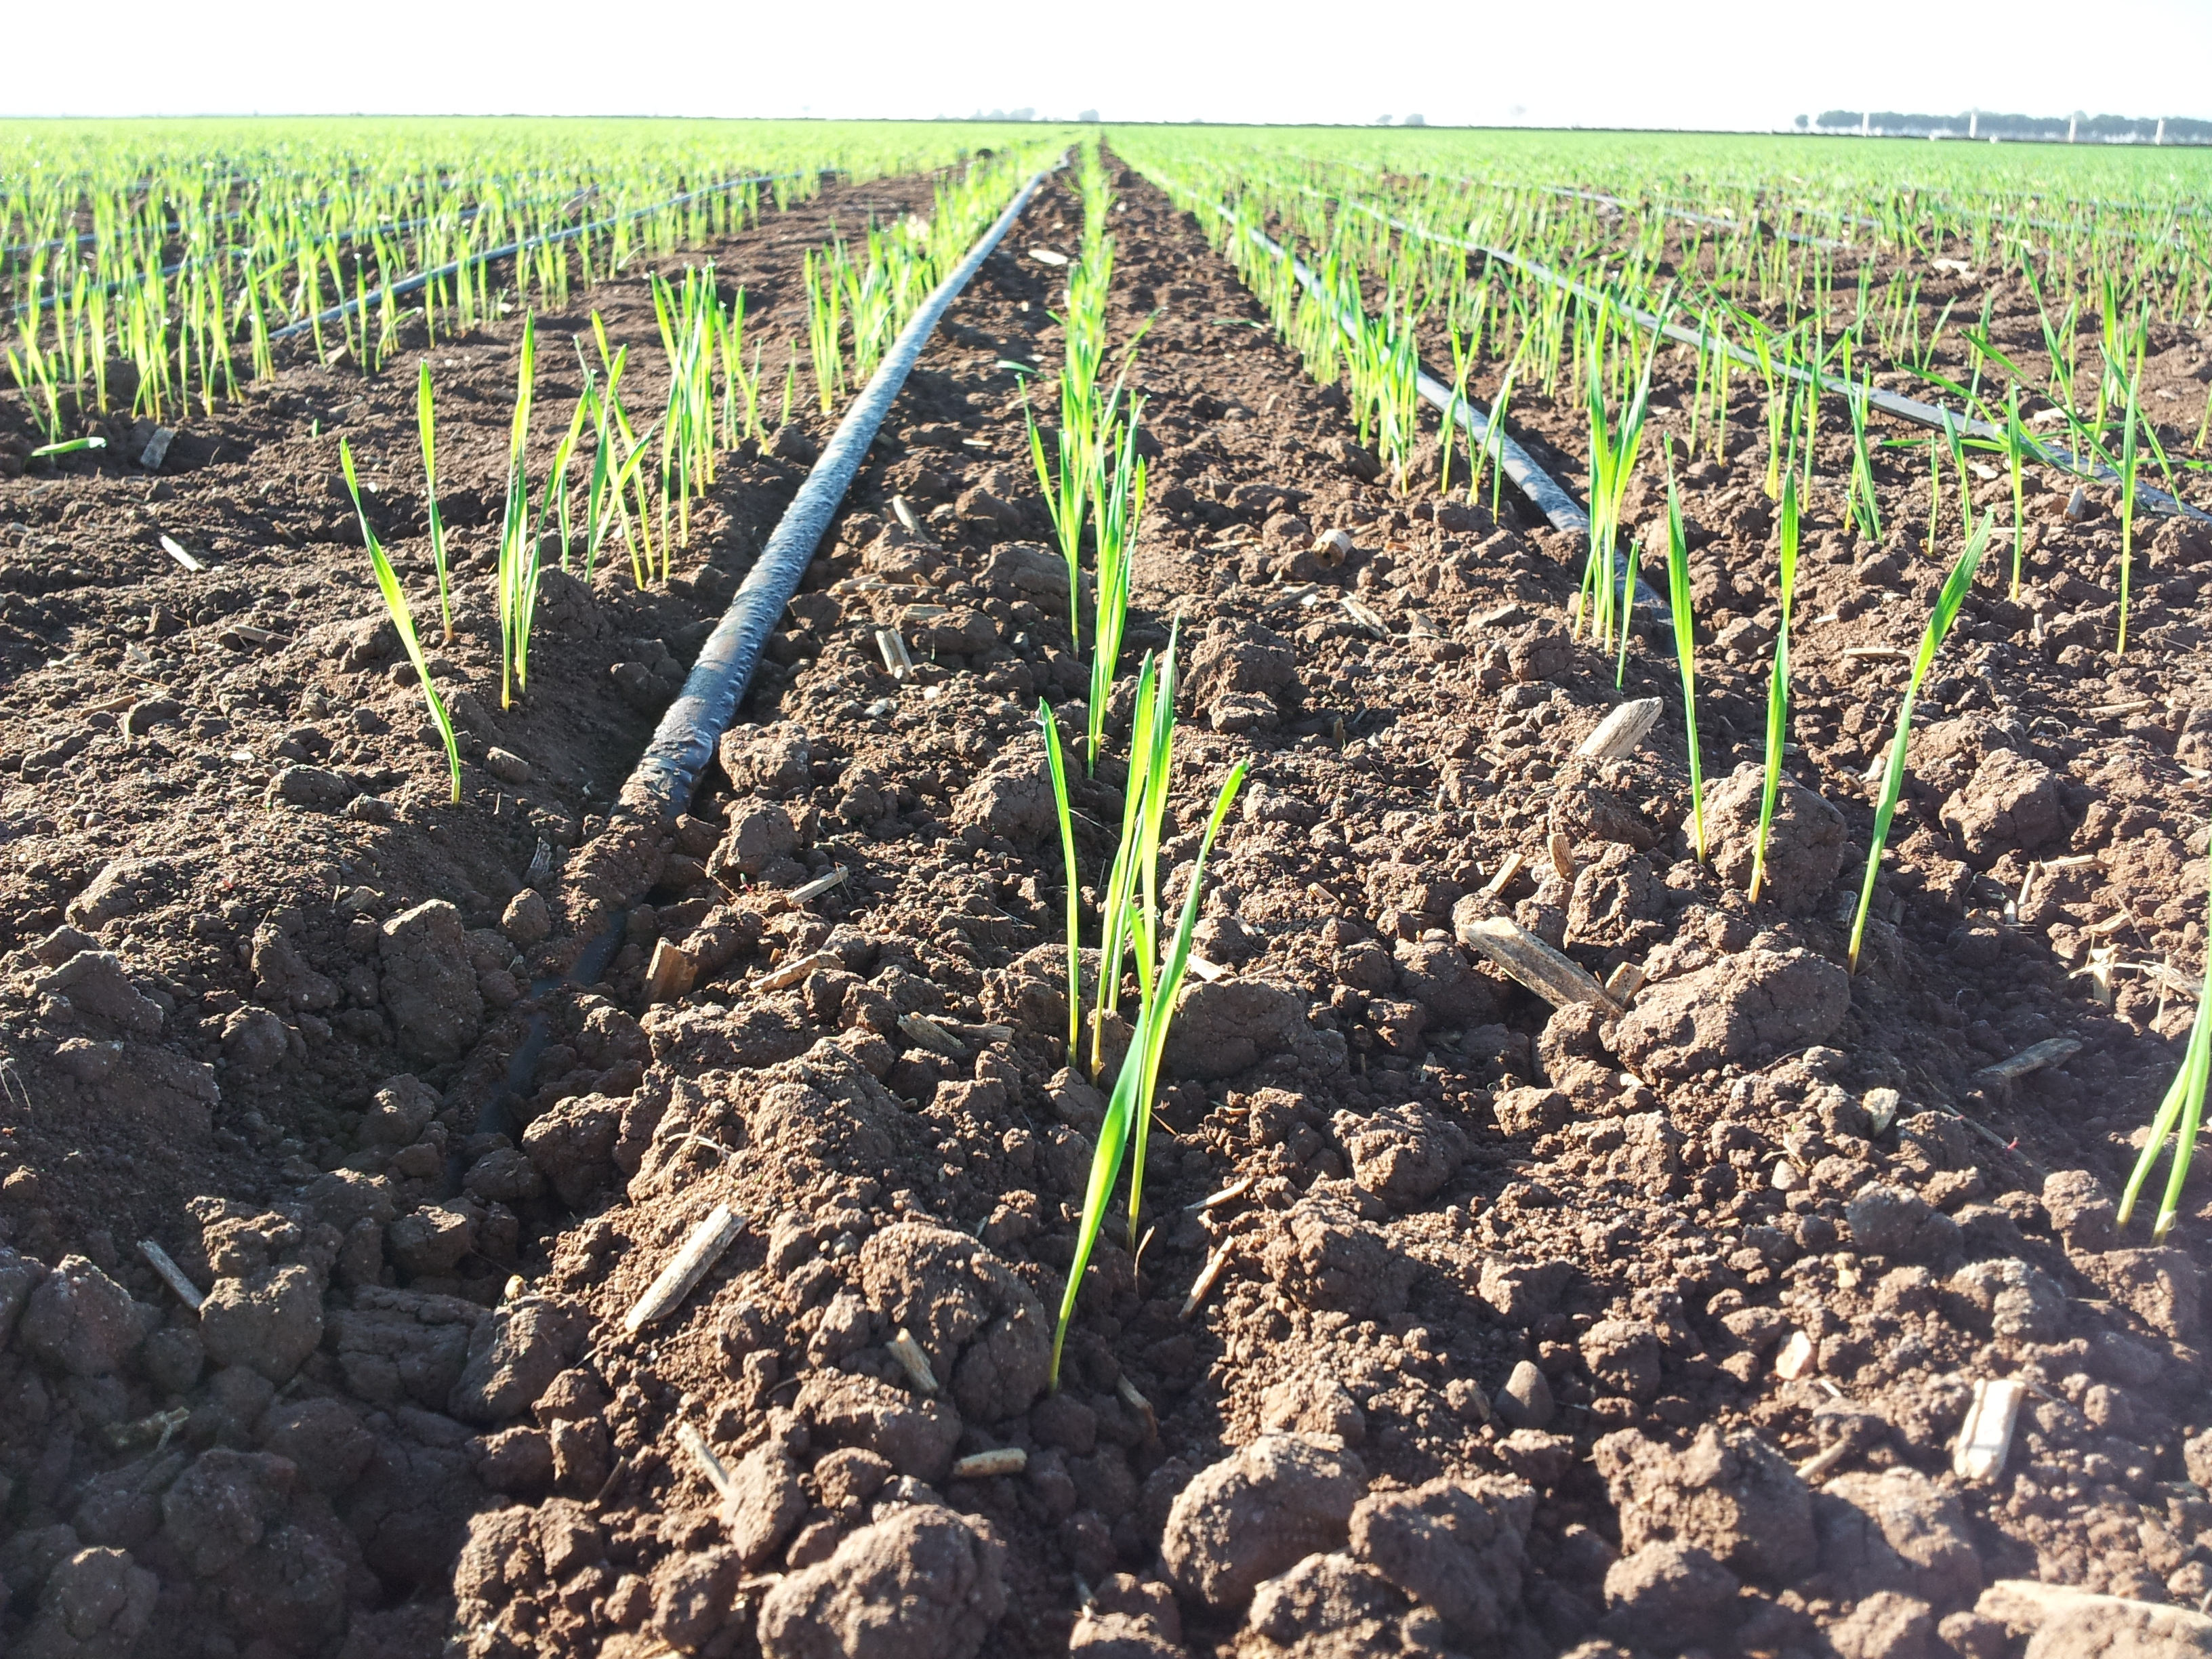 Weekly photo competition runner up, 11 January 2013: Drip irrigation in Obregon